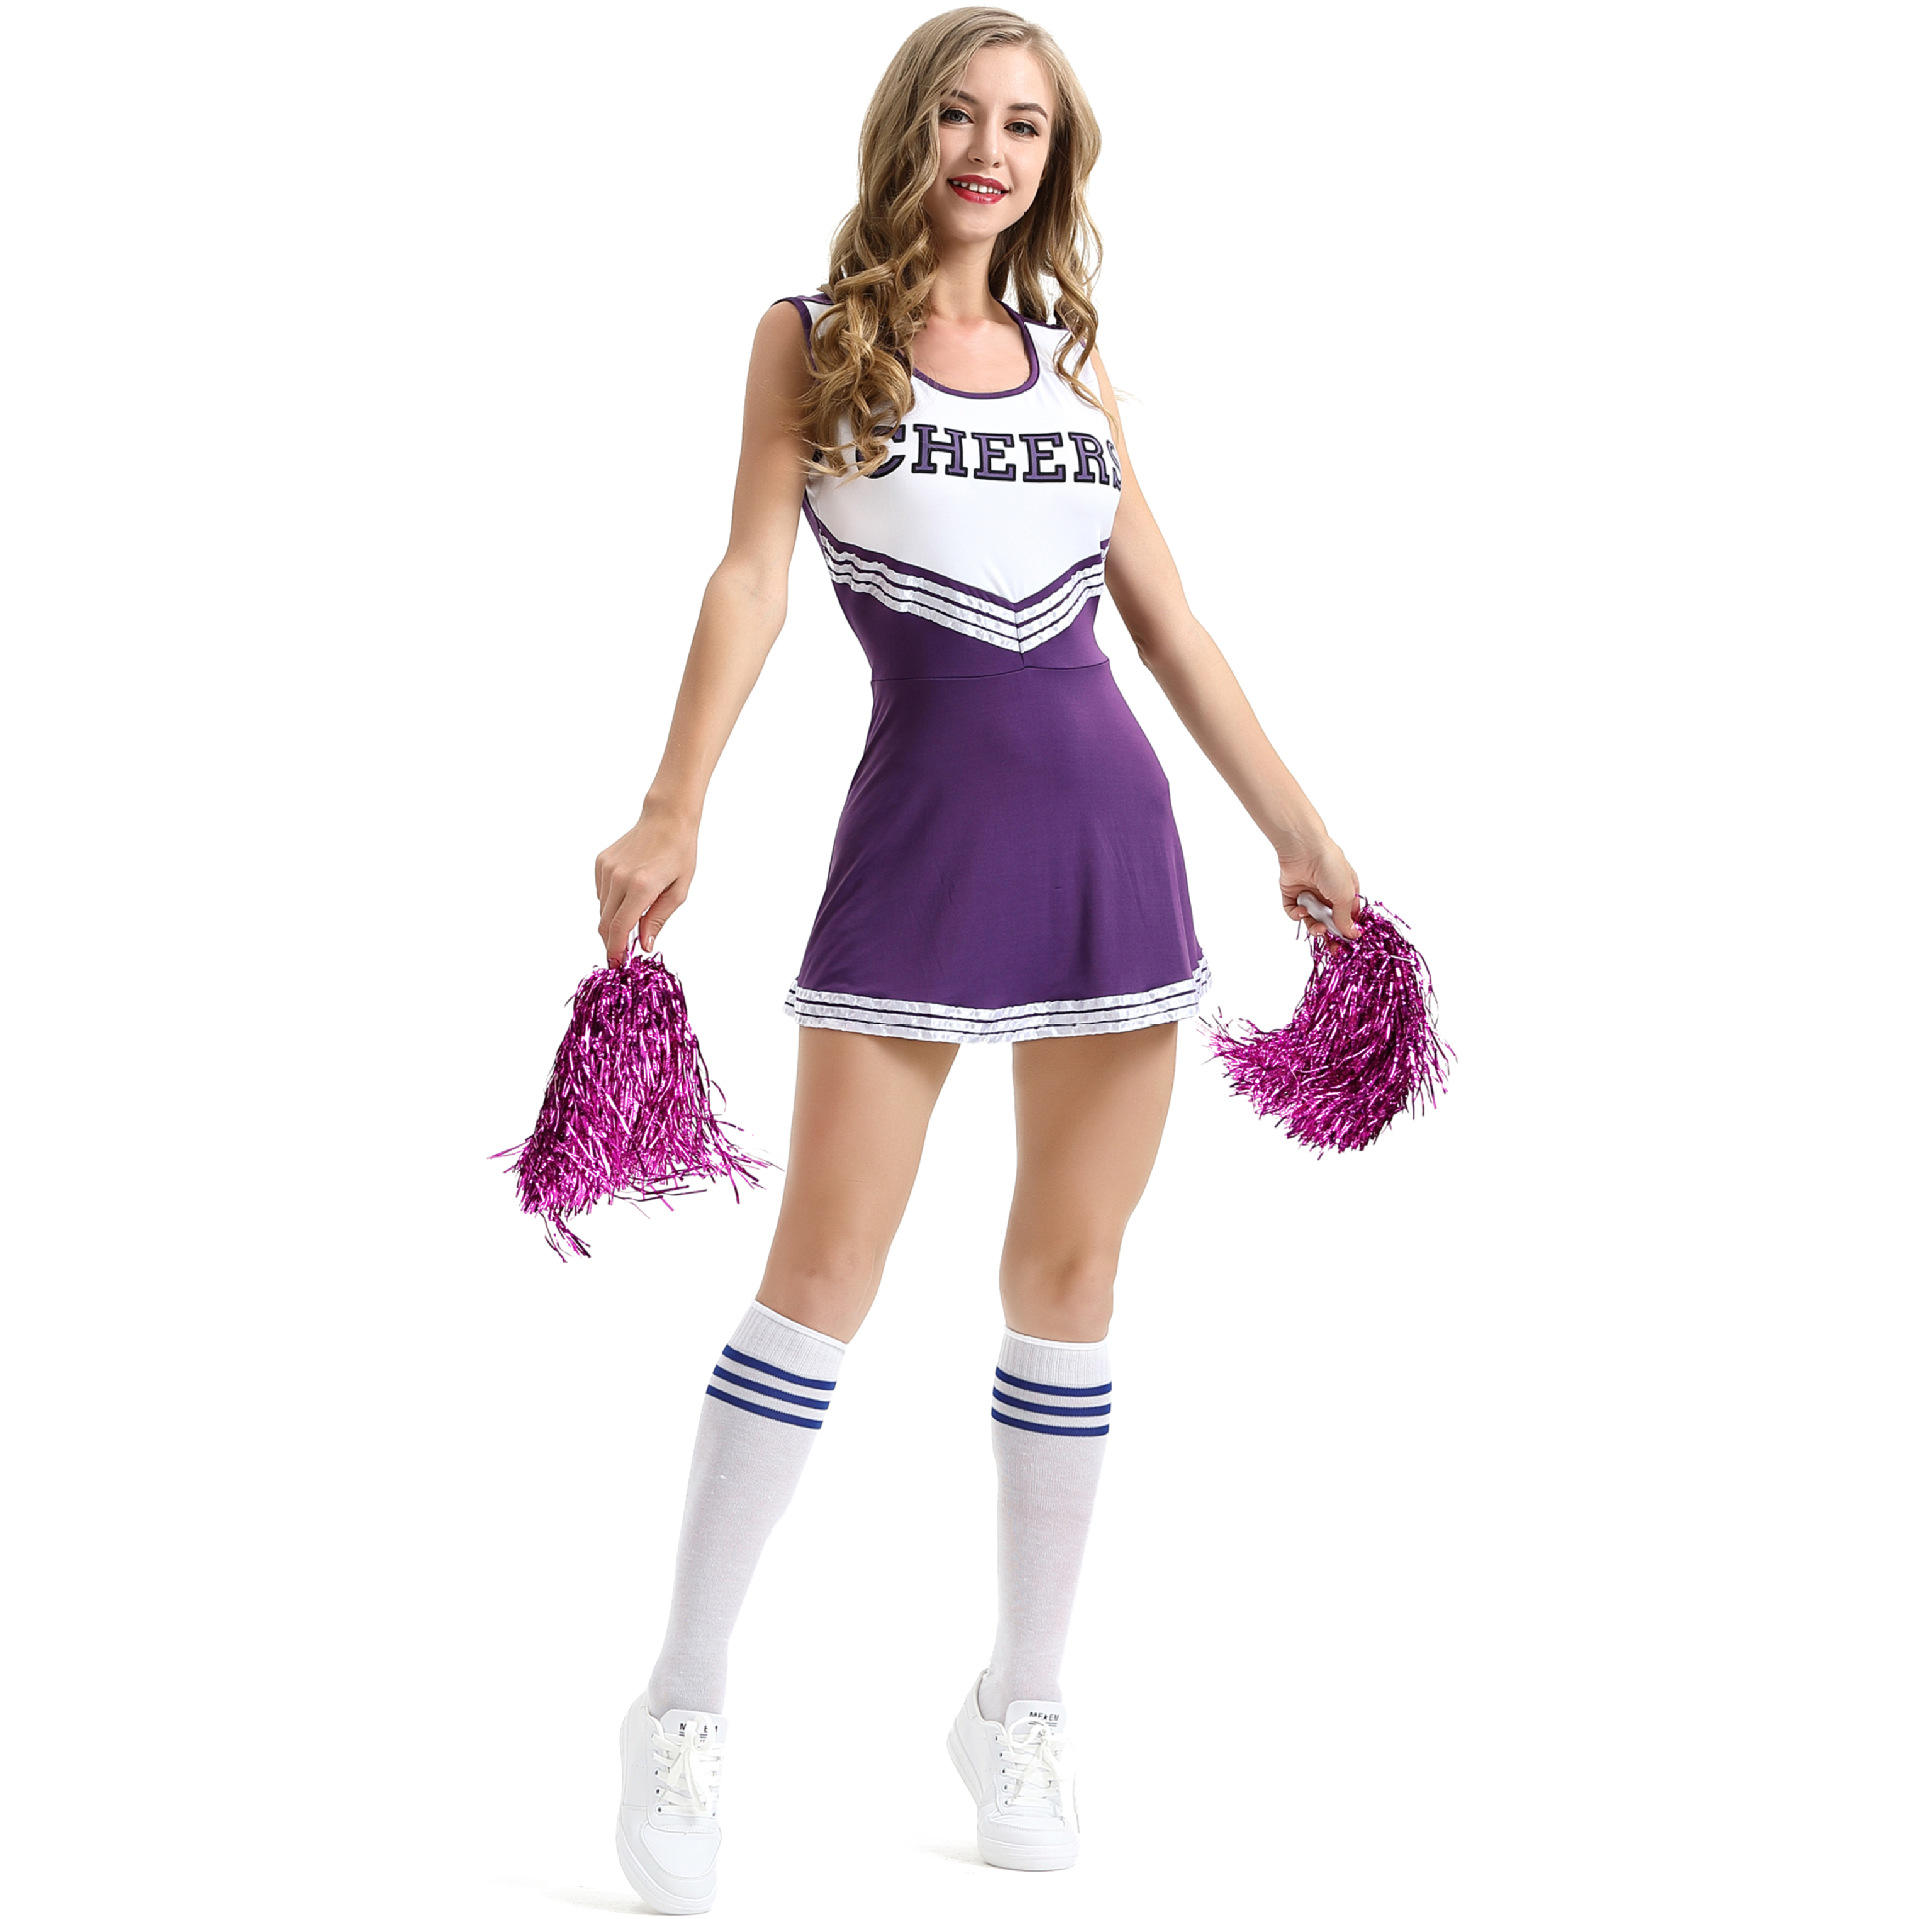 Hot goedkope fashion dance <span class=keywords><strong>kleding</strong></span> school <span class=keywords><strong>kleding</strong></span> sexy uniformen <span class=keywords><strong>cheerleading</strong></span> uniformen